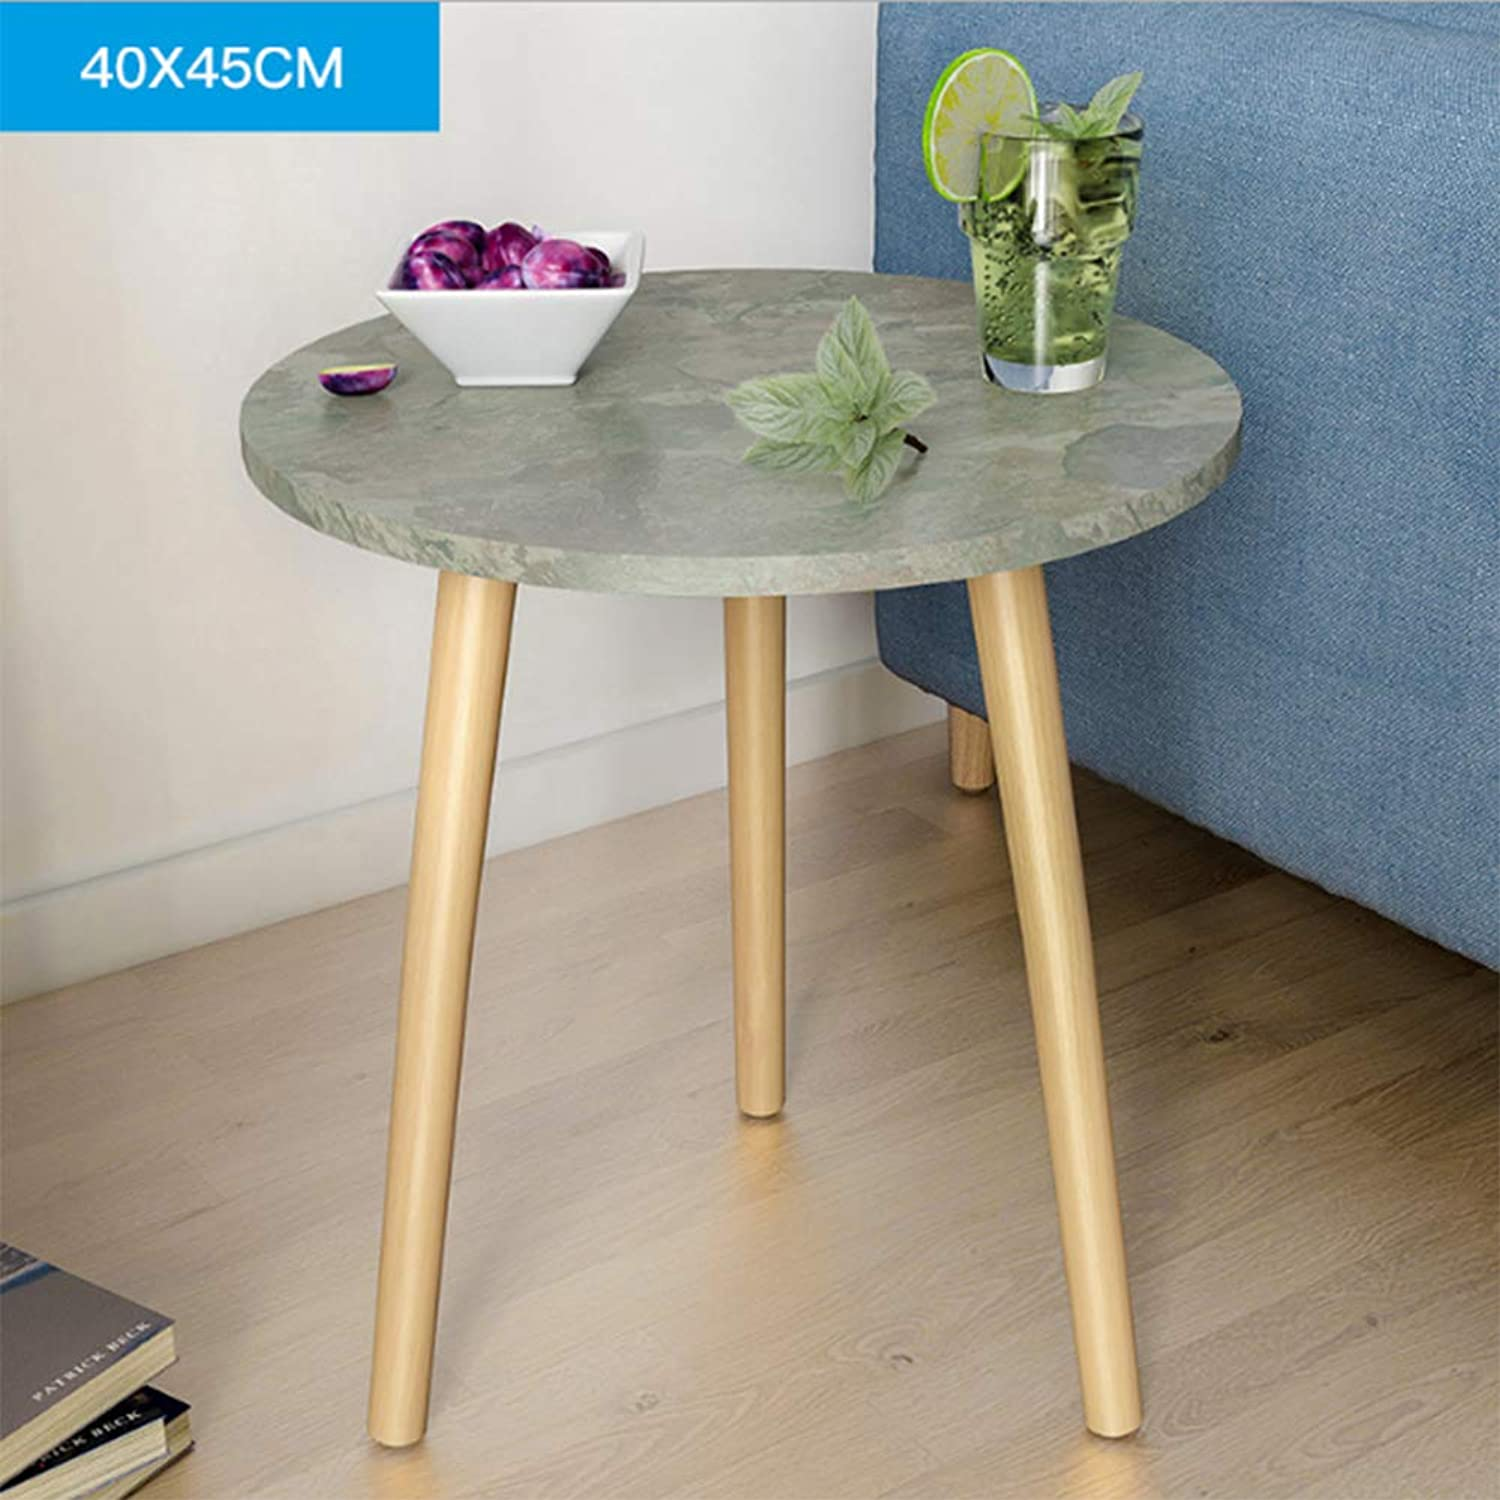 Coffee Table Modern Round Side Sofa Snack End Tables Nightstand for Living Room Home and Office (Round),B